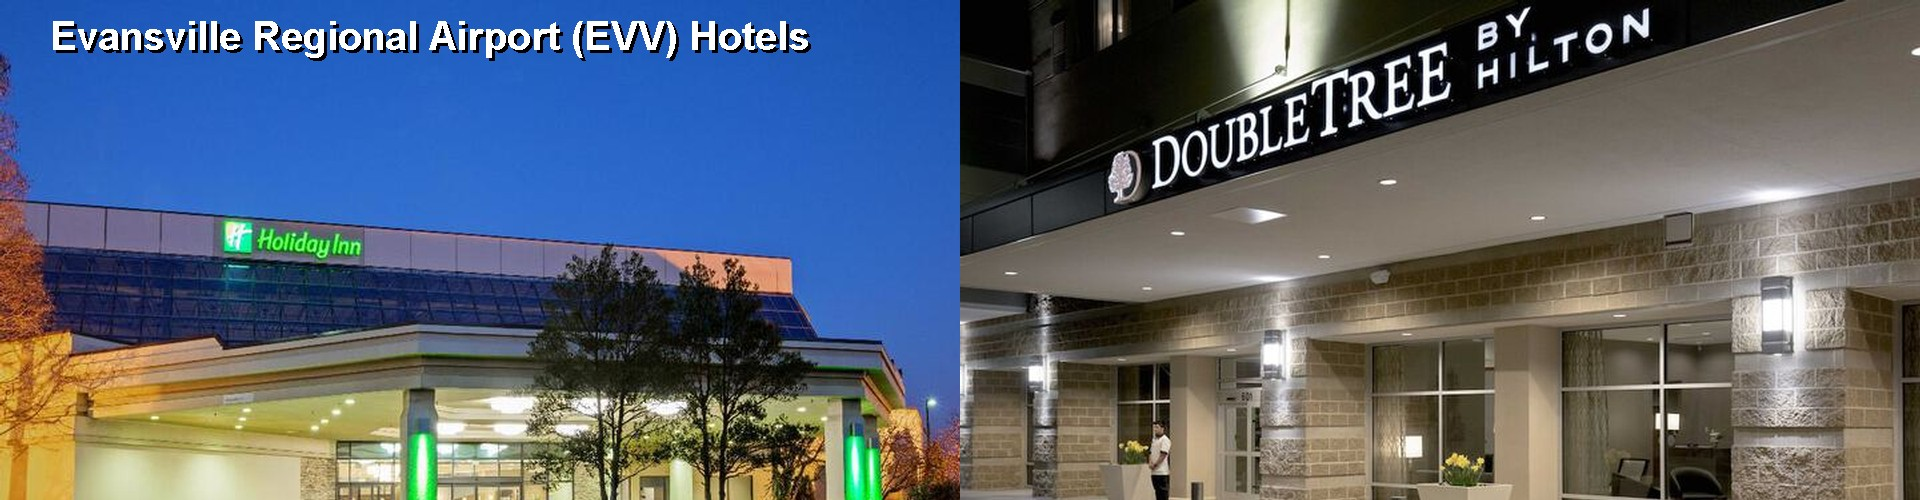 5 Best Hotels near Evansville Regional Airport (EVV)